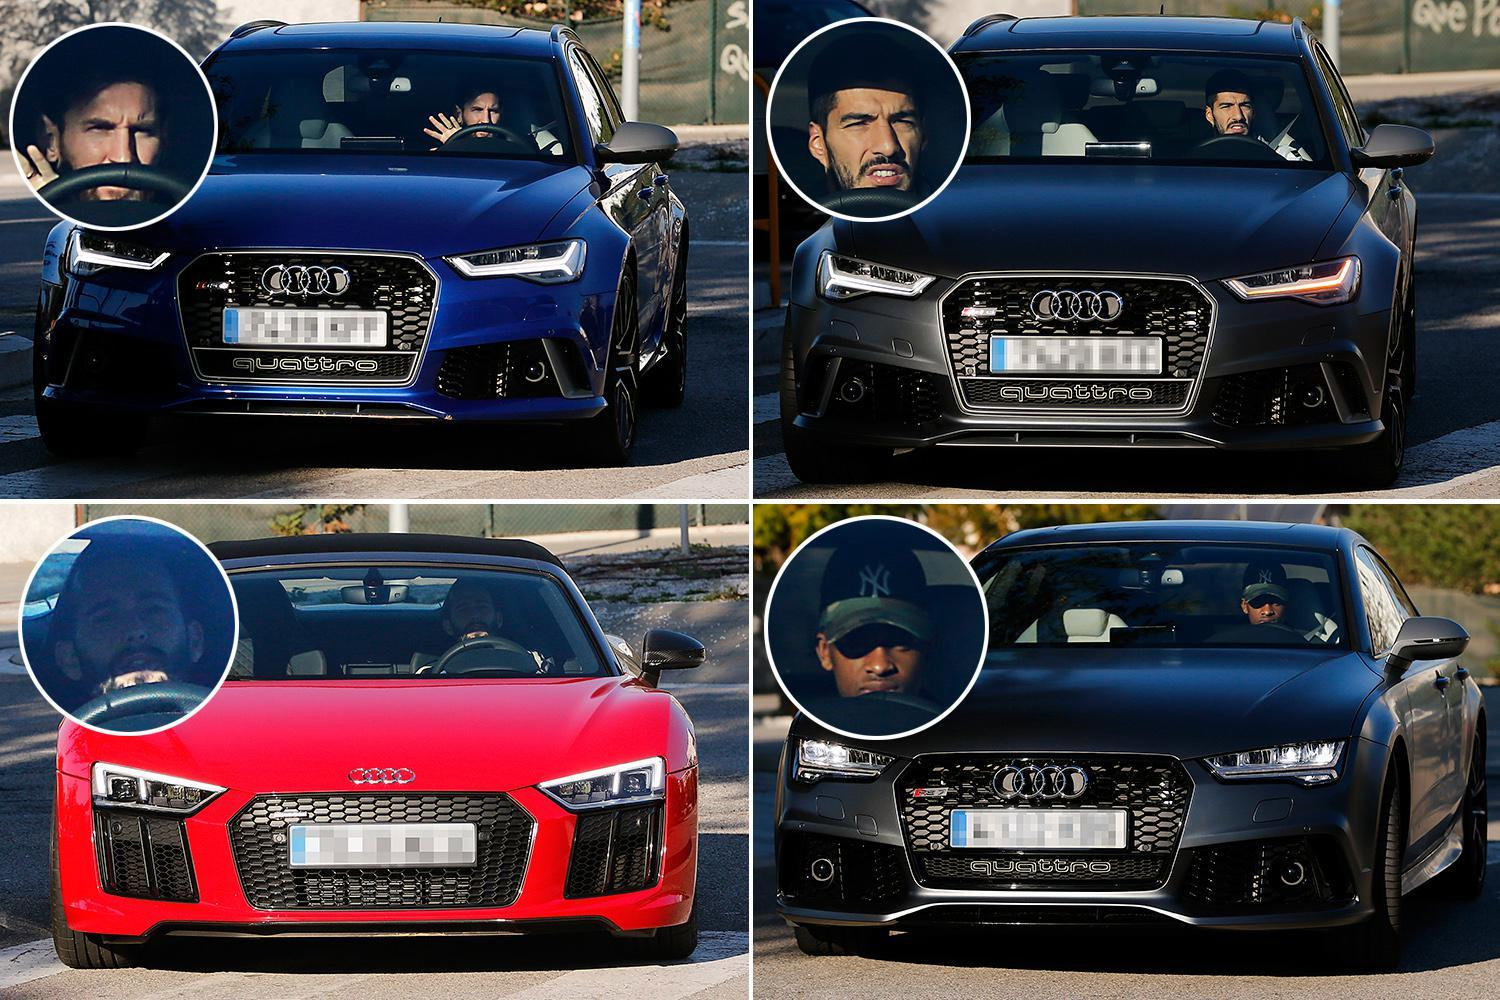 Lionel Messi, Luis Suarez, Philippe Coutinho and the rest of the Barcelona squad are so well drilled they all drive the same cars